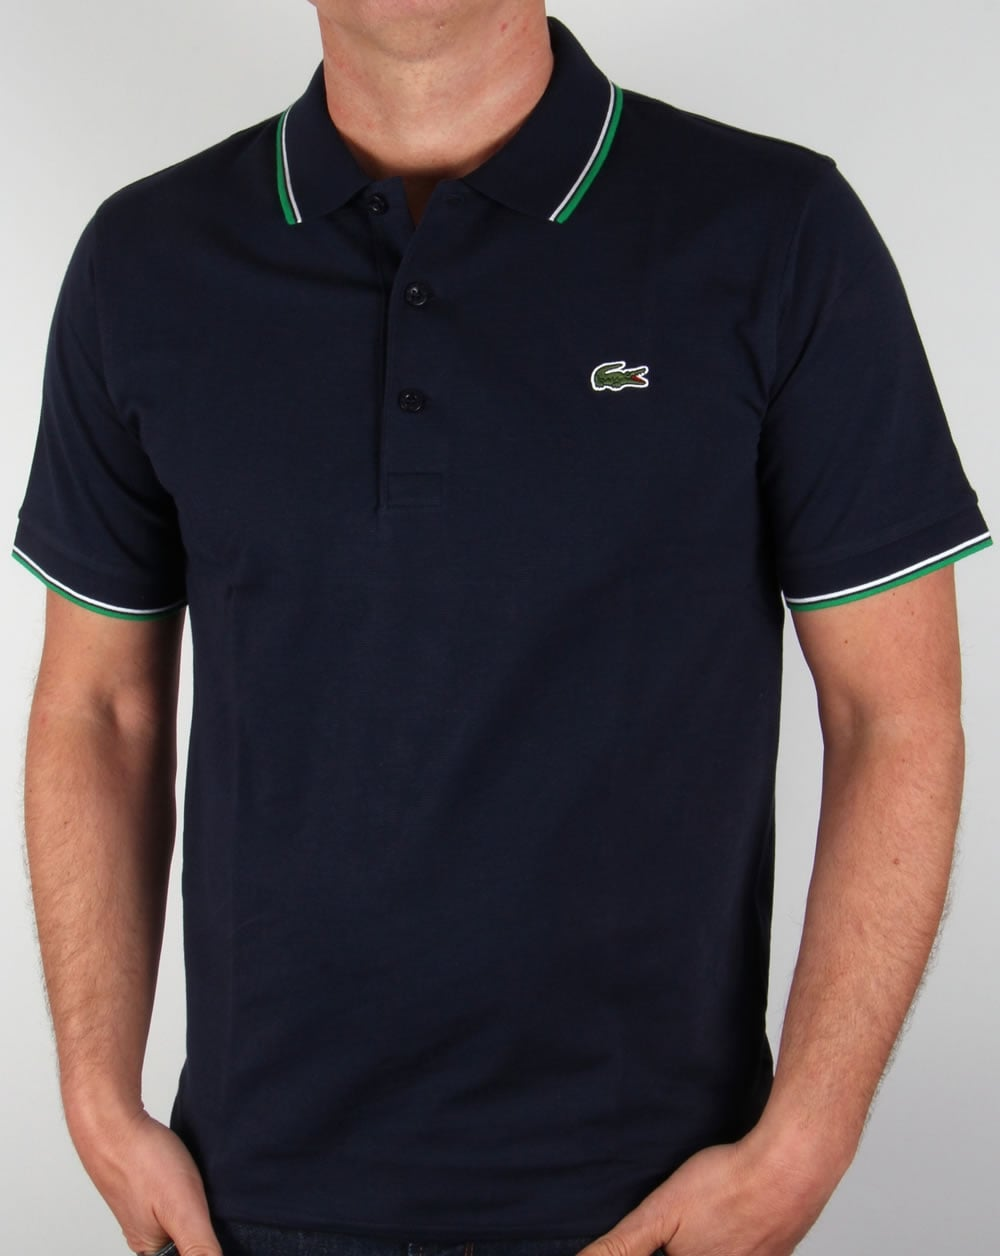 lacoste tipped polo shirt navy green sport mens. Black Bedroom Furniture Sets. Home Design Ideas